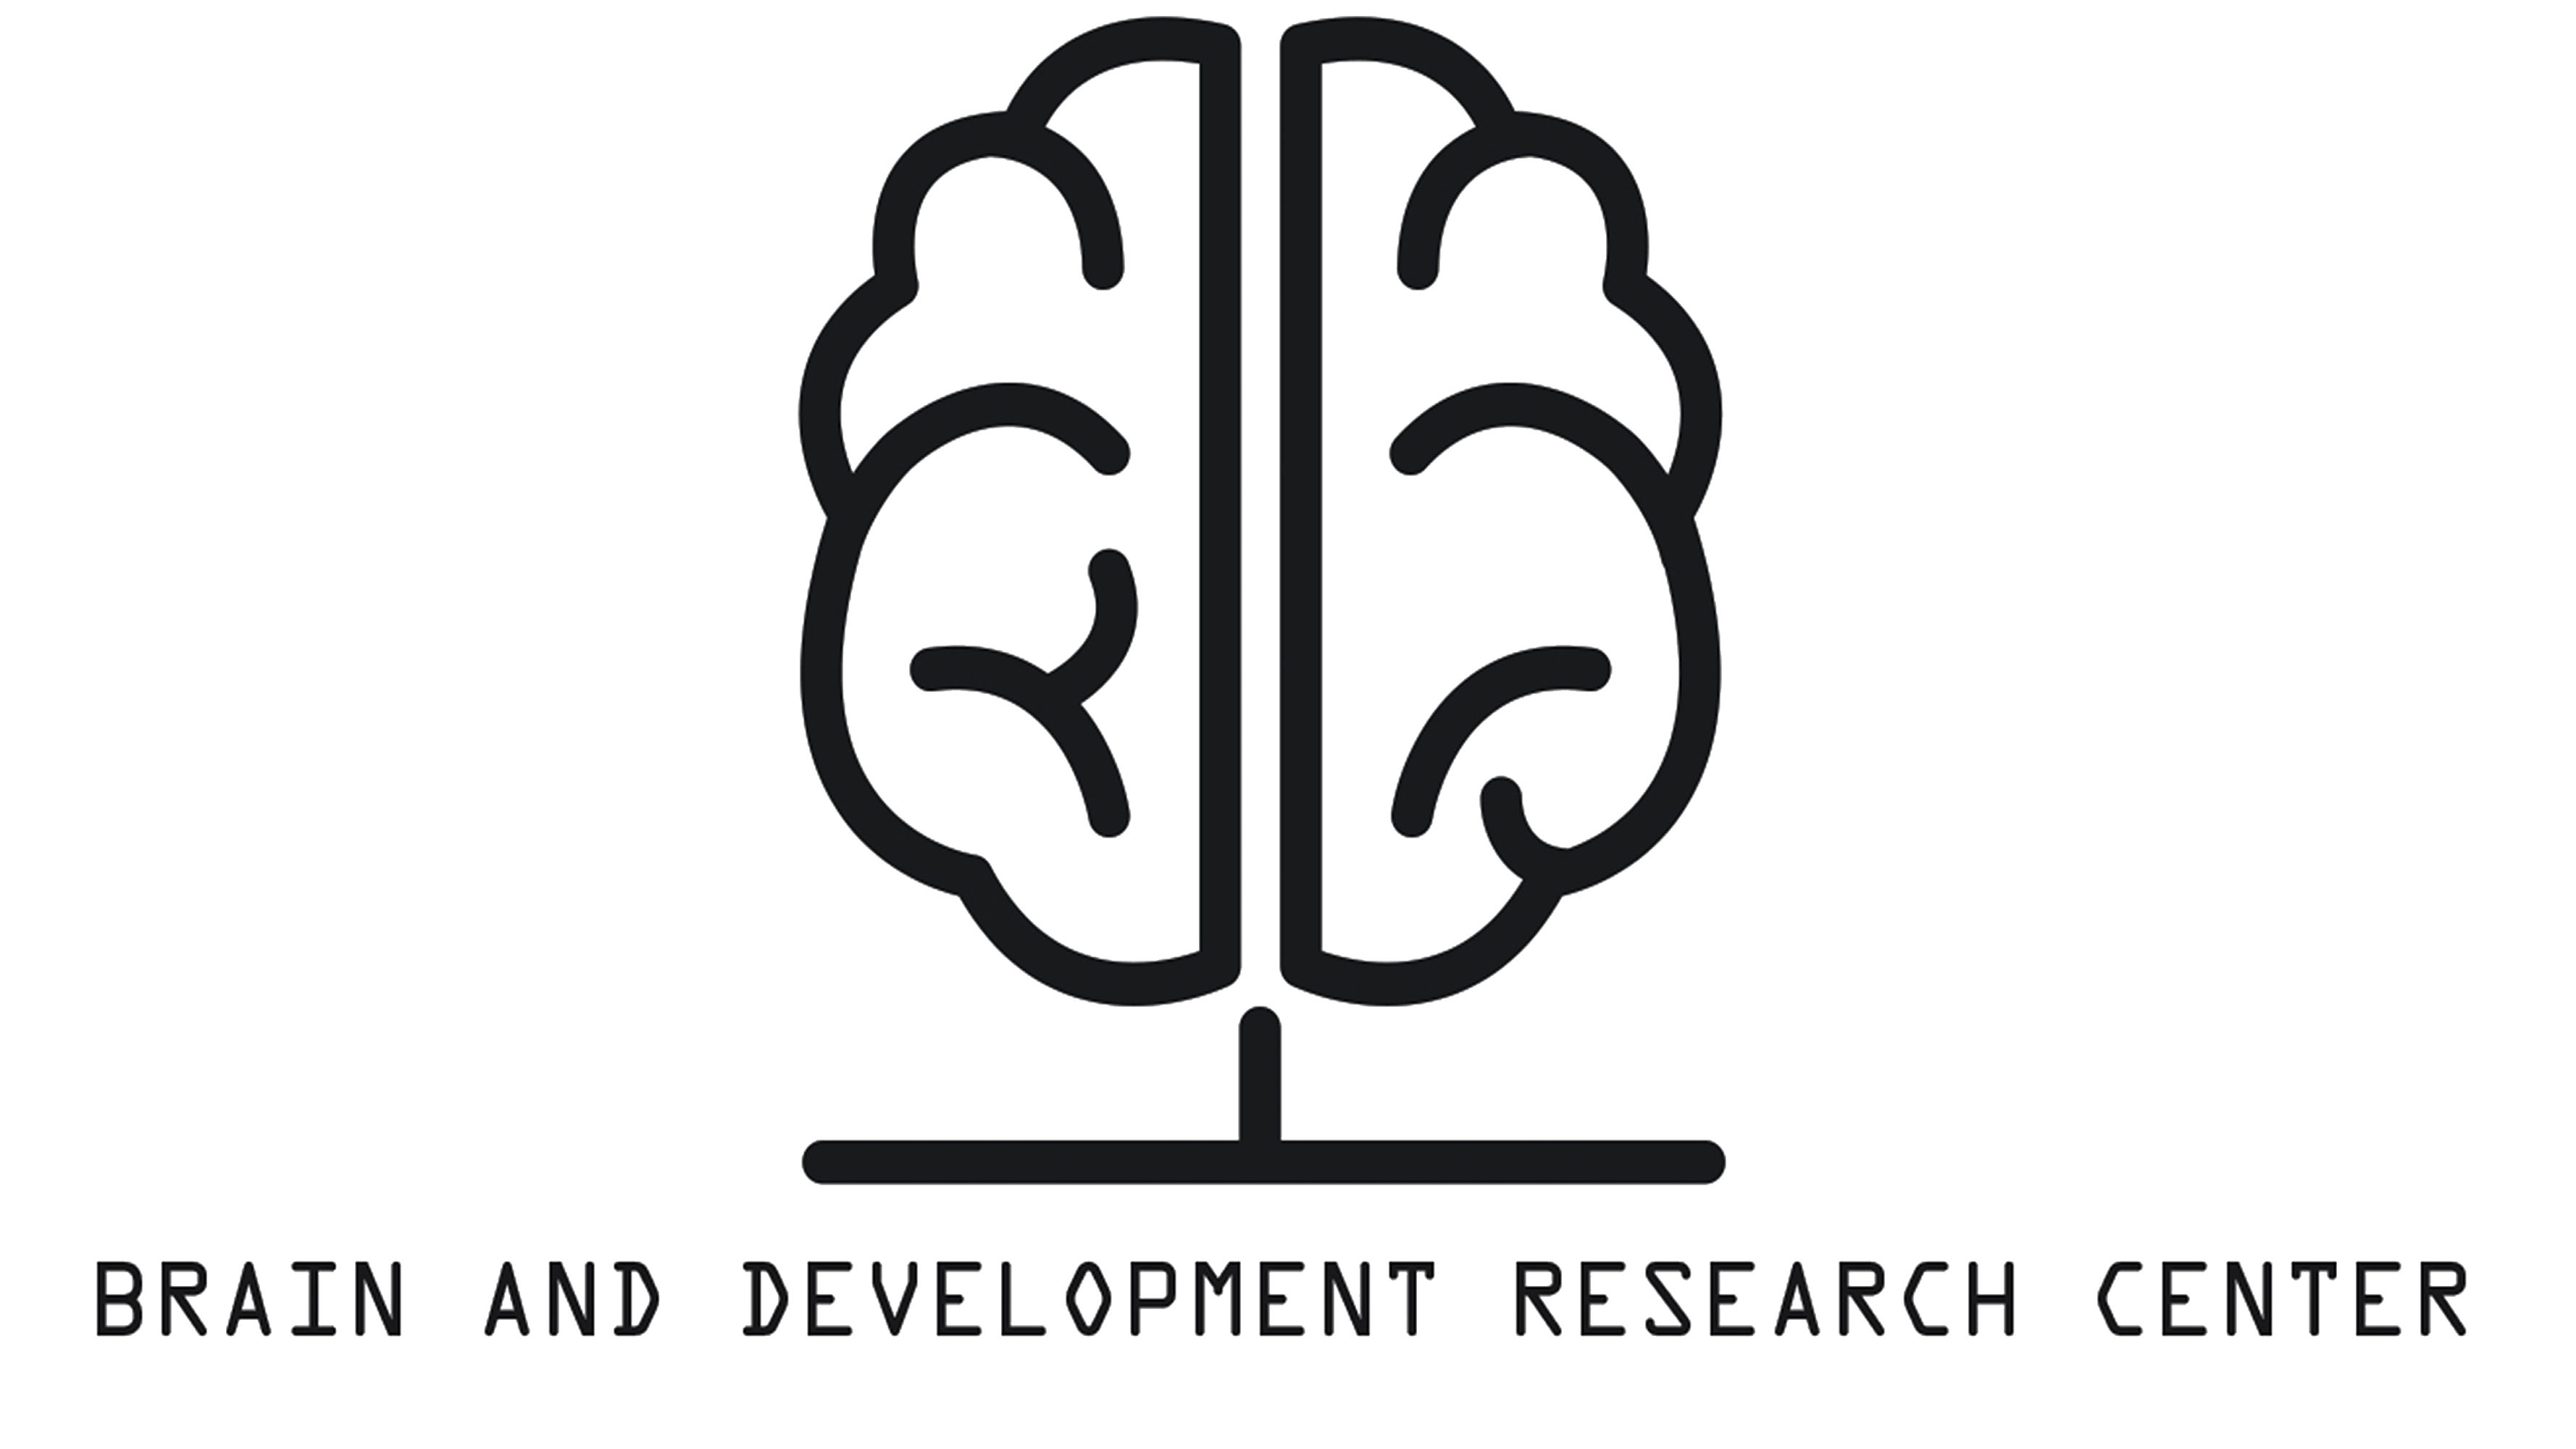 Brain and Development Research Center